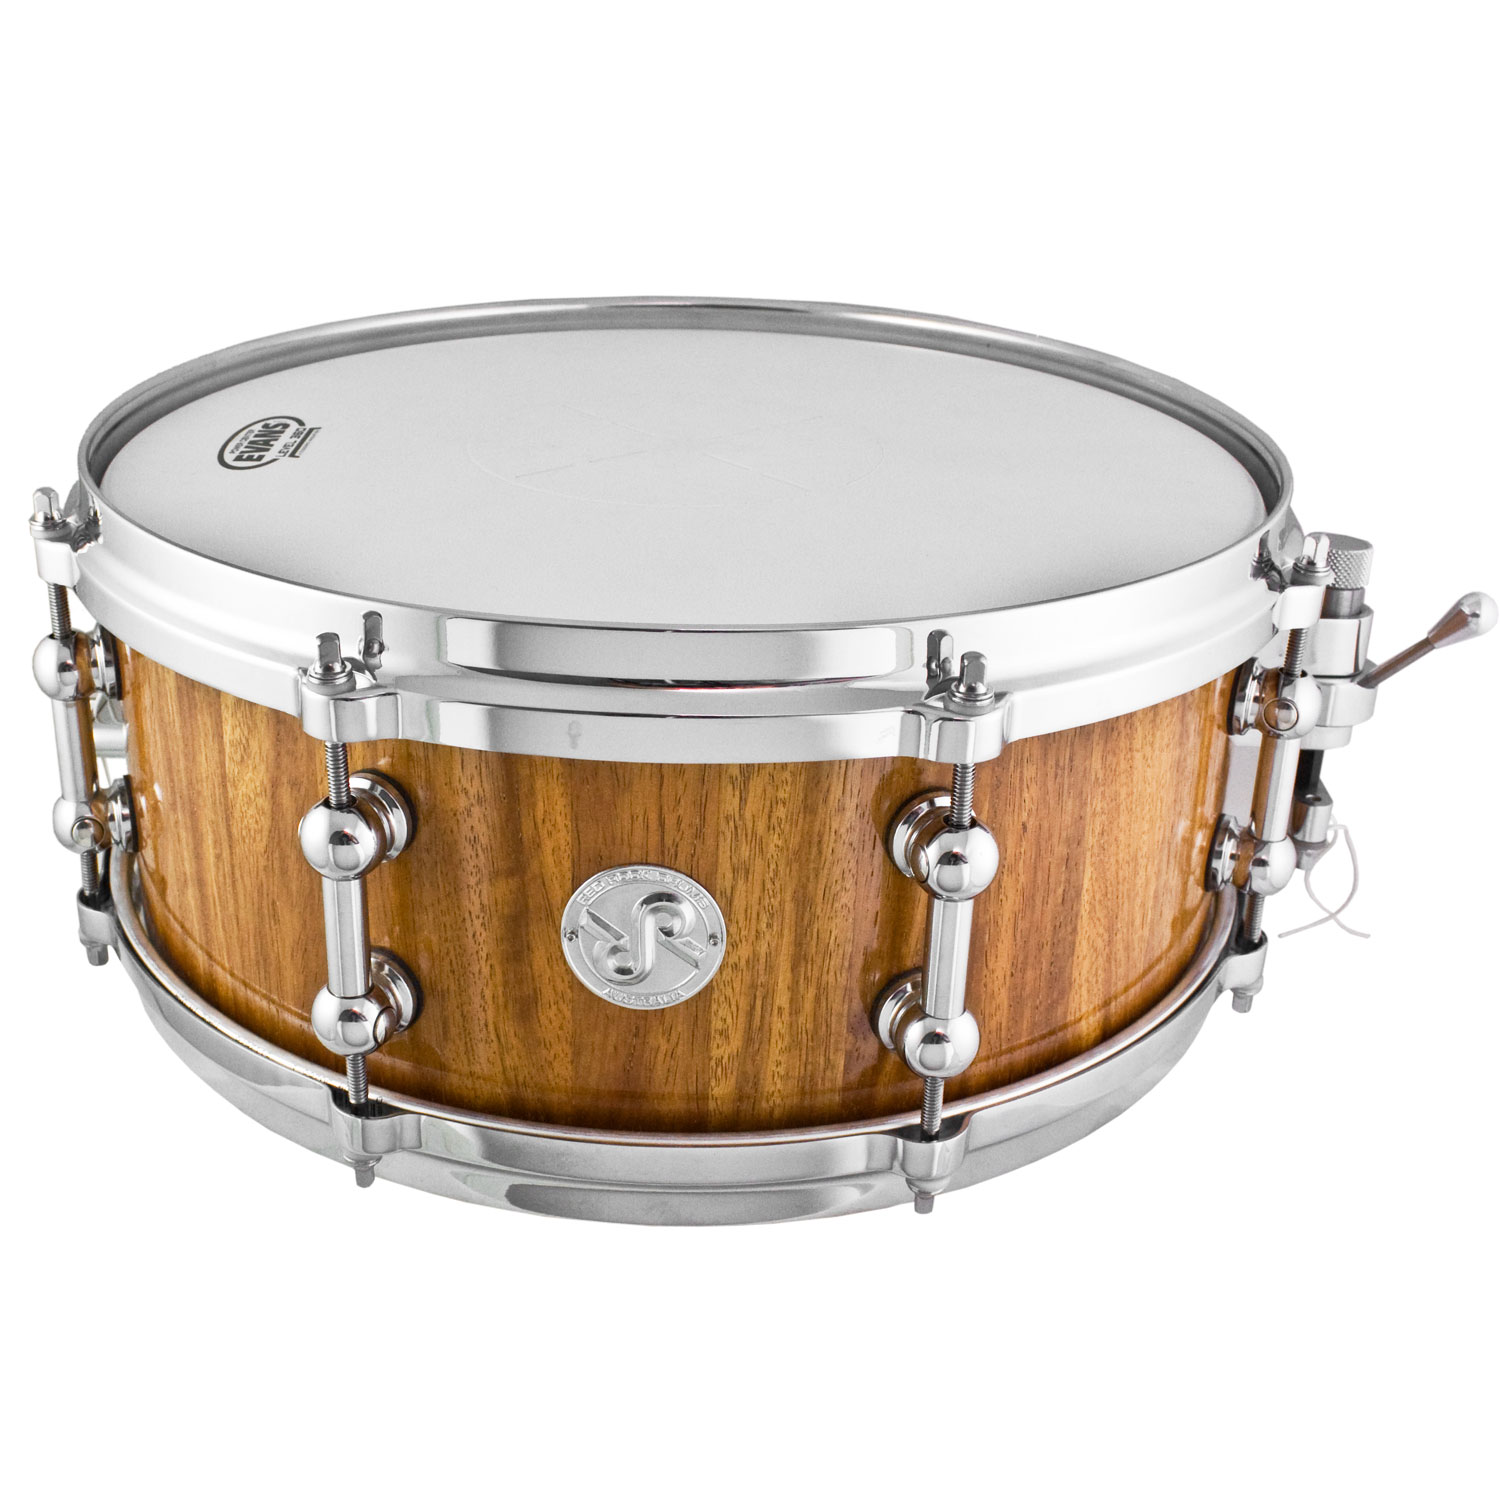 "Red Rock Drums 6"" x 14"" New Guinea Rosewood Snare Drum"